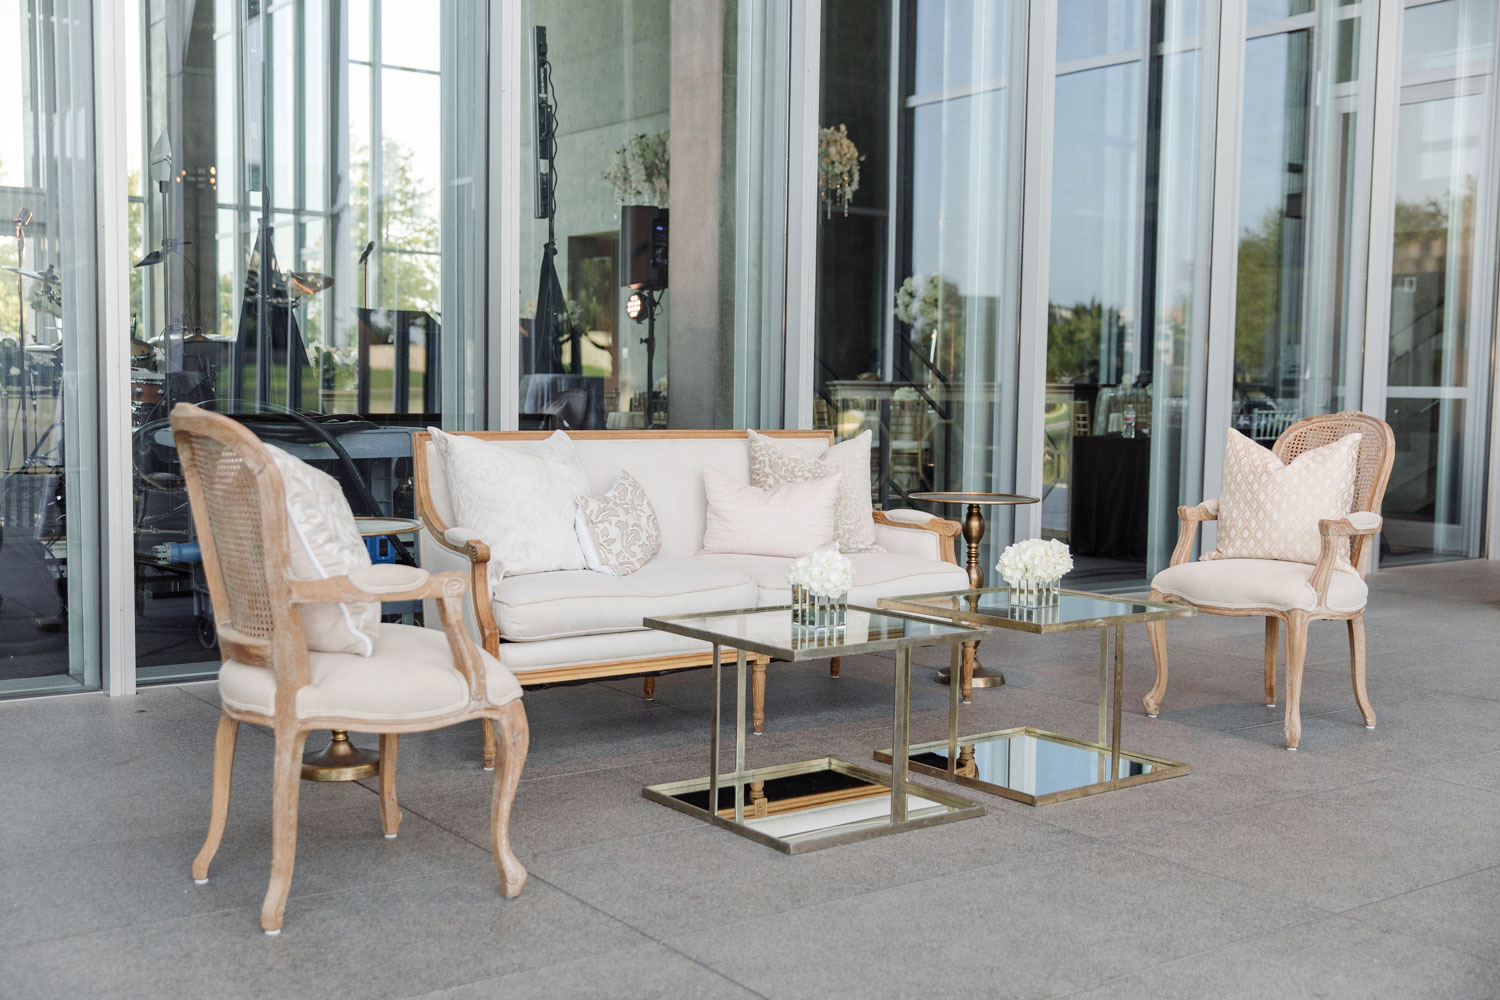 Lounge furniture outside of wedding reception